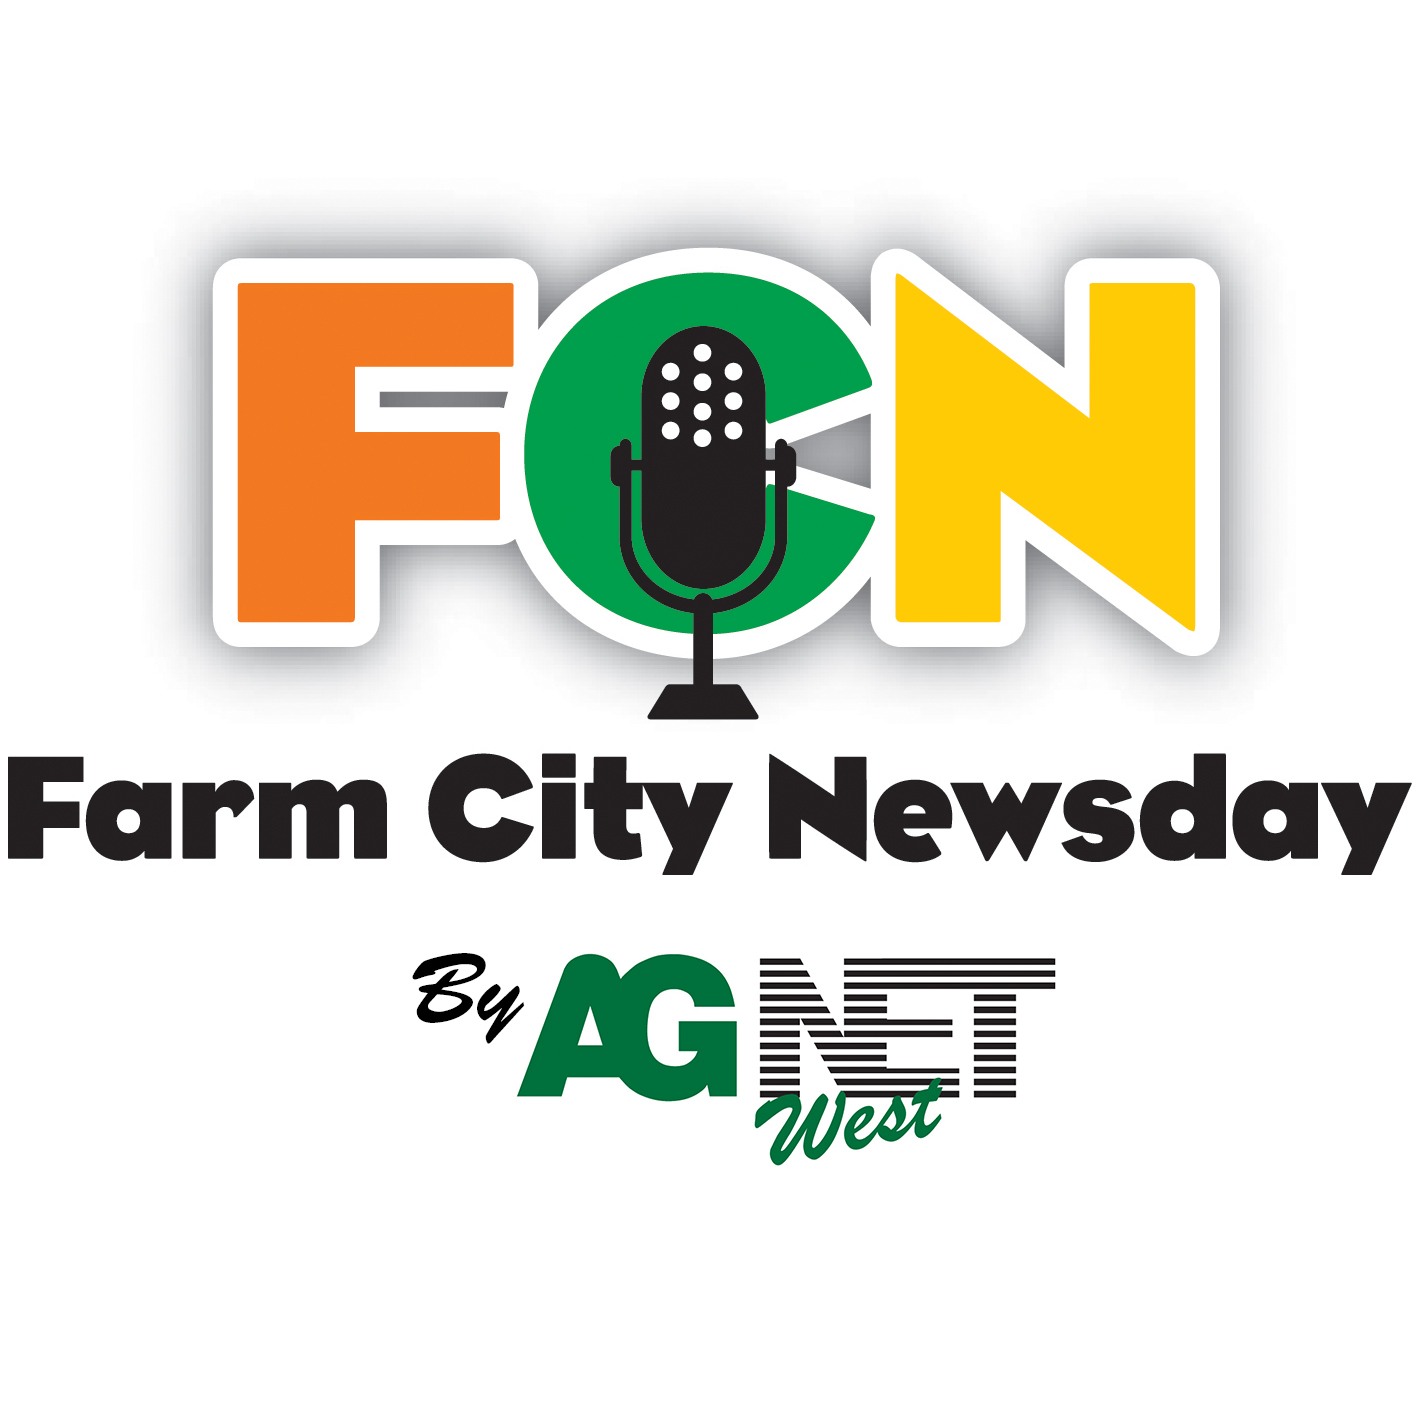 Farm City Newsday by AgNet West